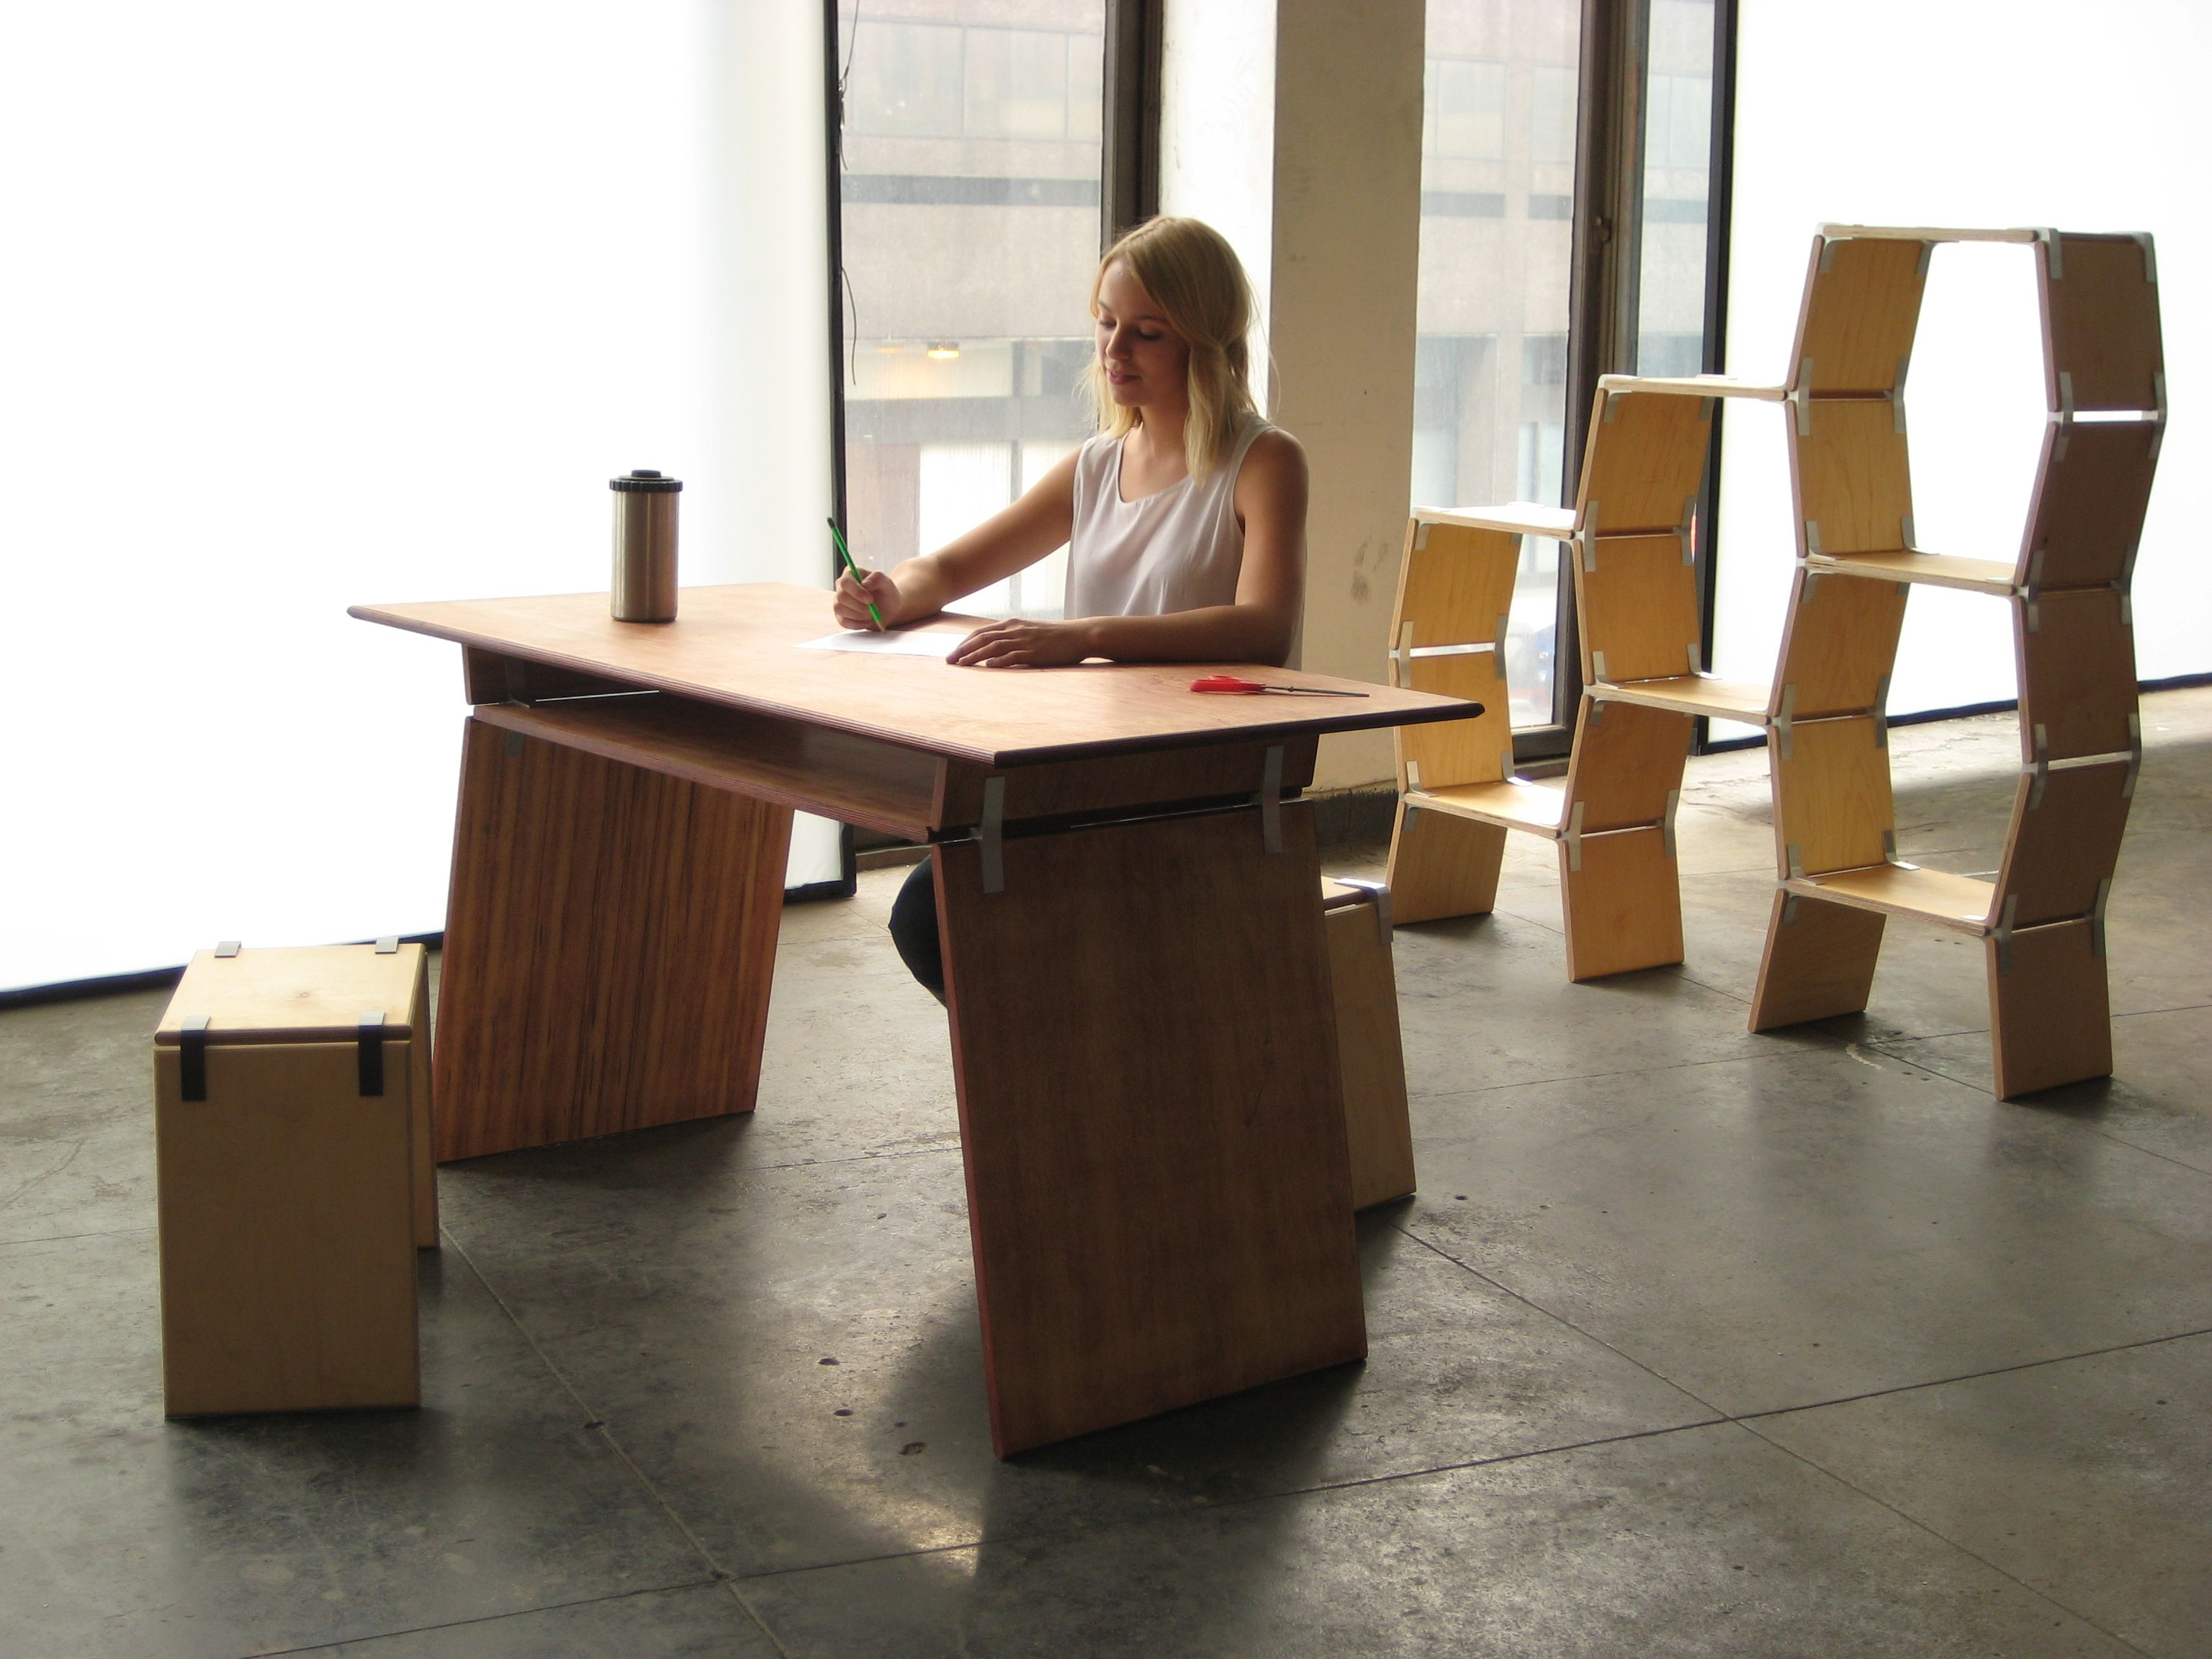 tool free furniture. Modos Is A Tool Free #furniture System That Uses Connectors And #boards To Make Furniture I